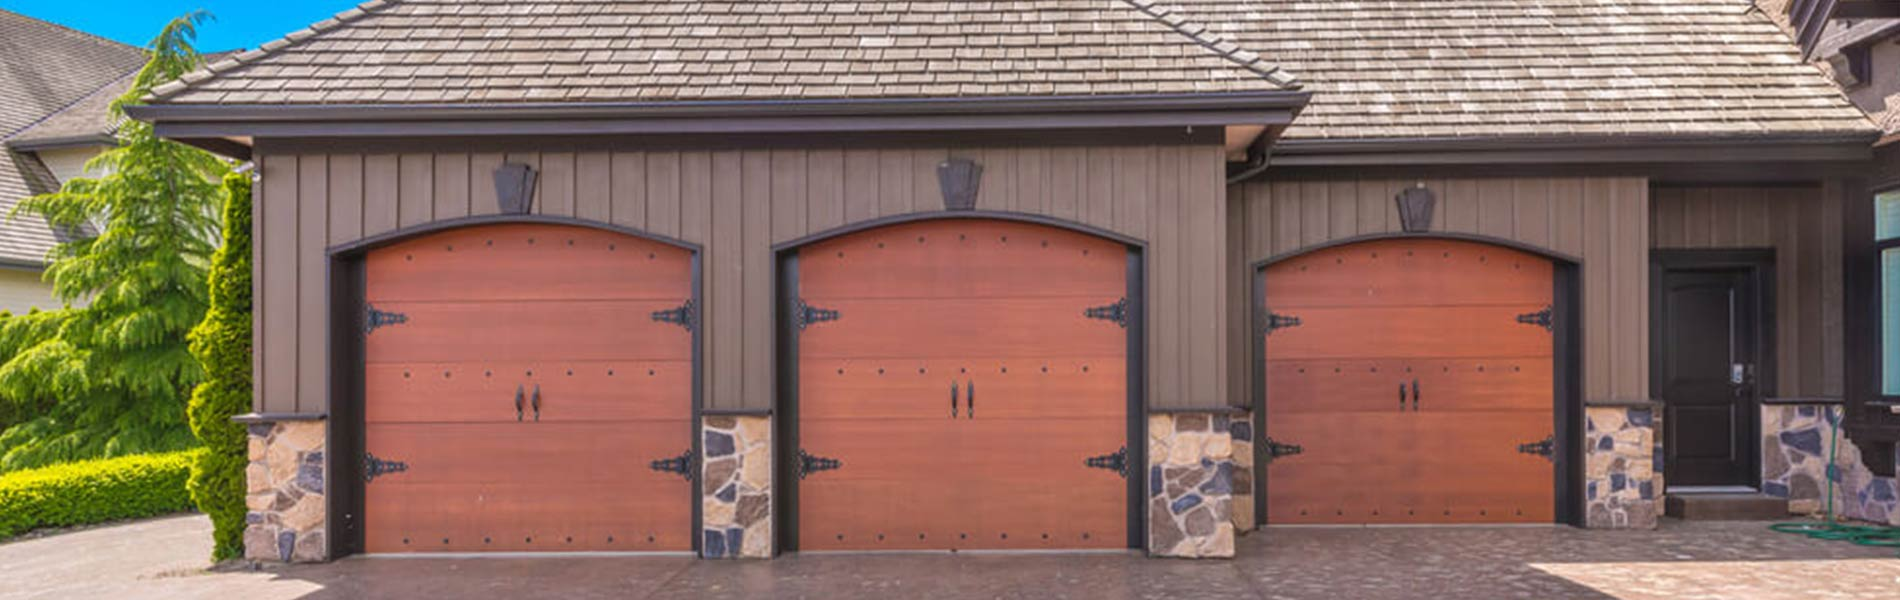 Golden Garage Door Service, Brooklyn, NY 347-647-9160